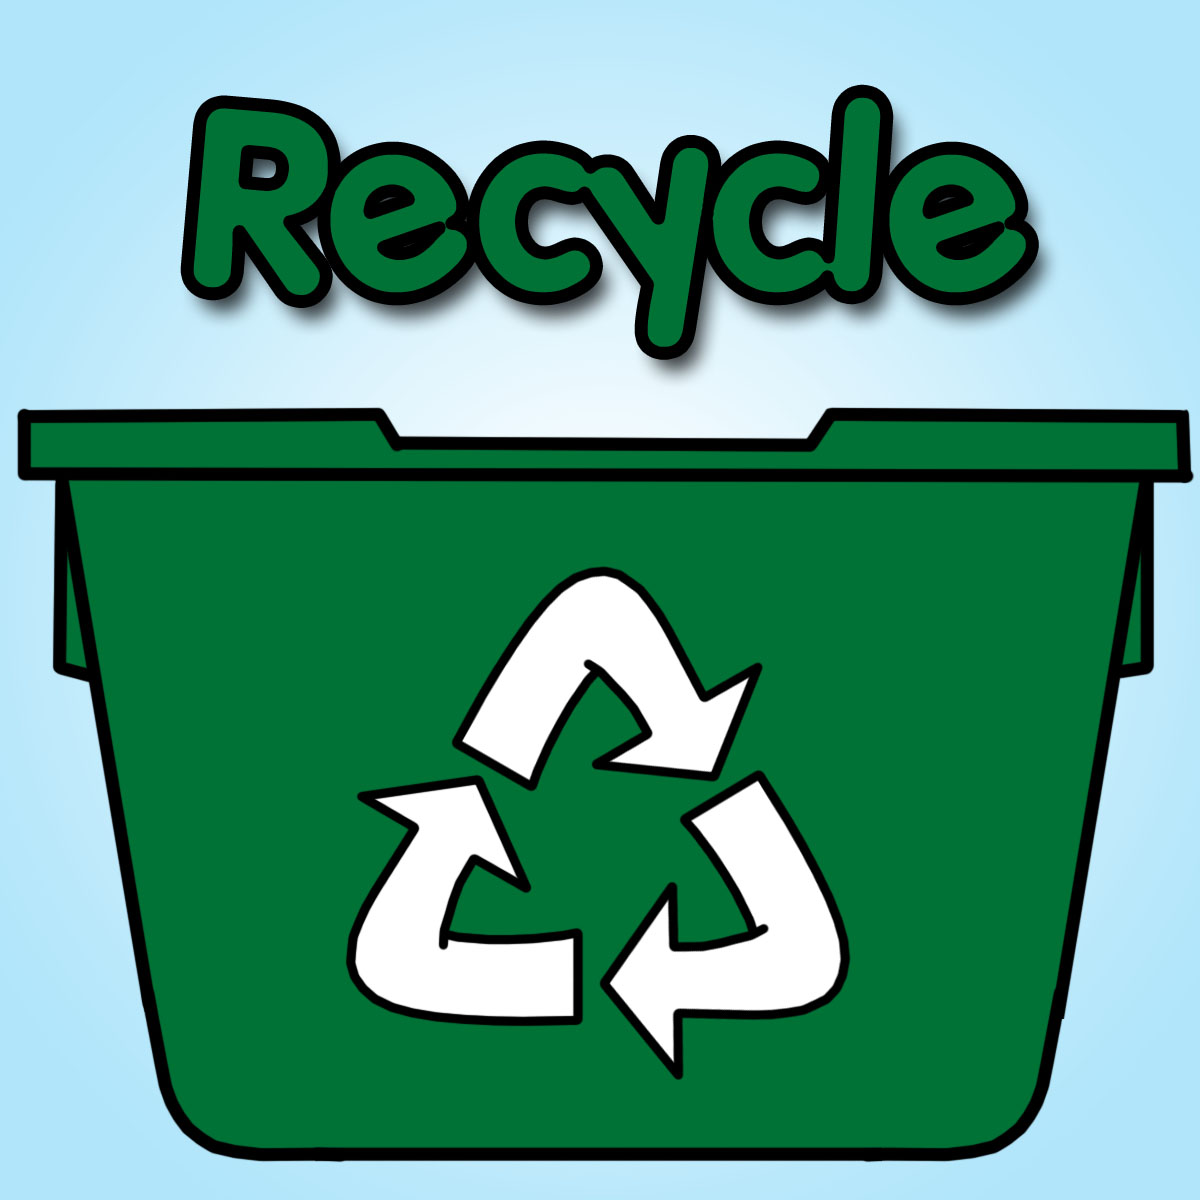 Recycle clipart kid